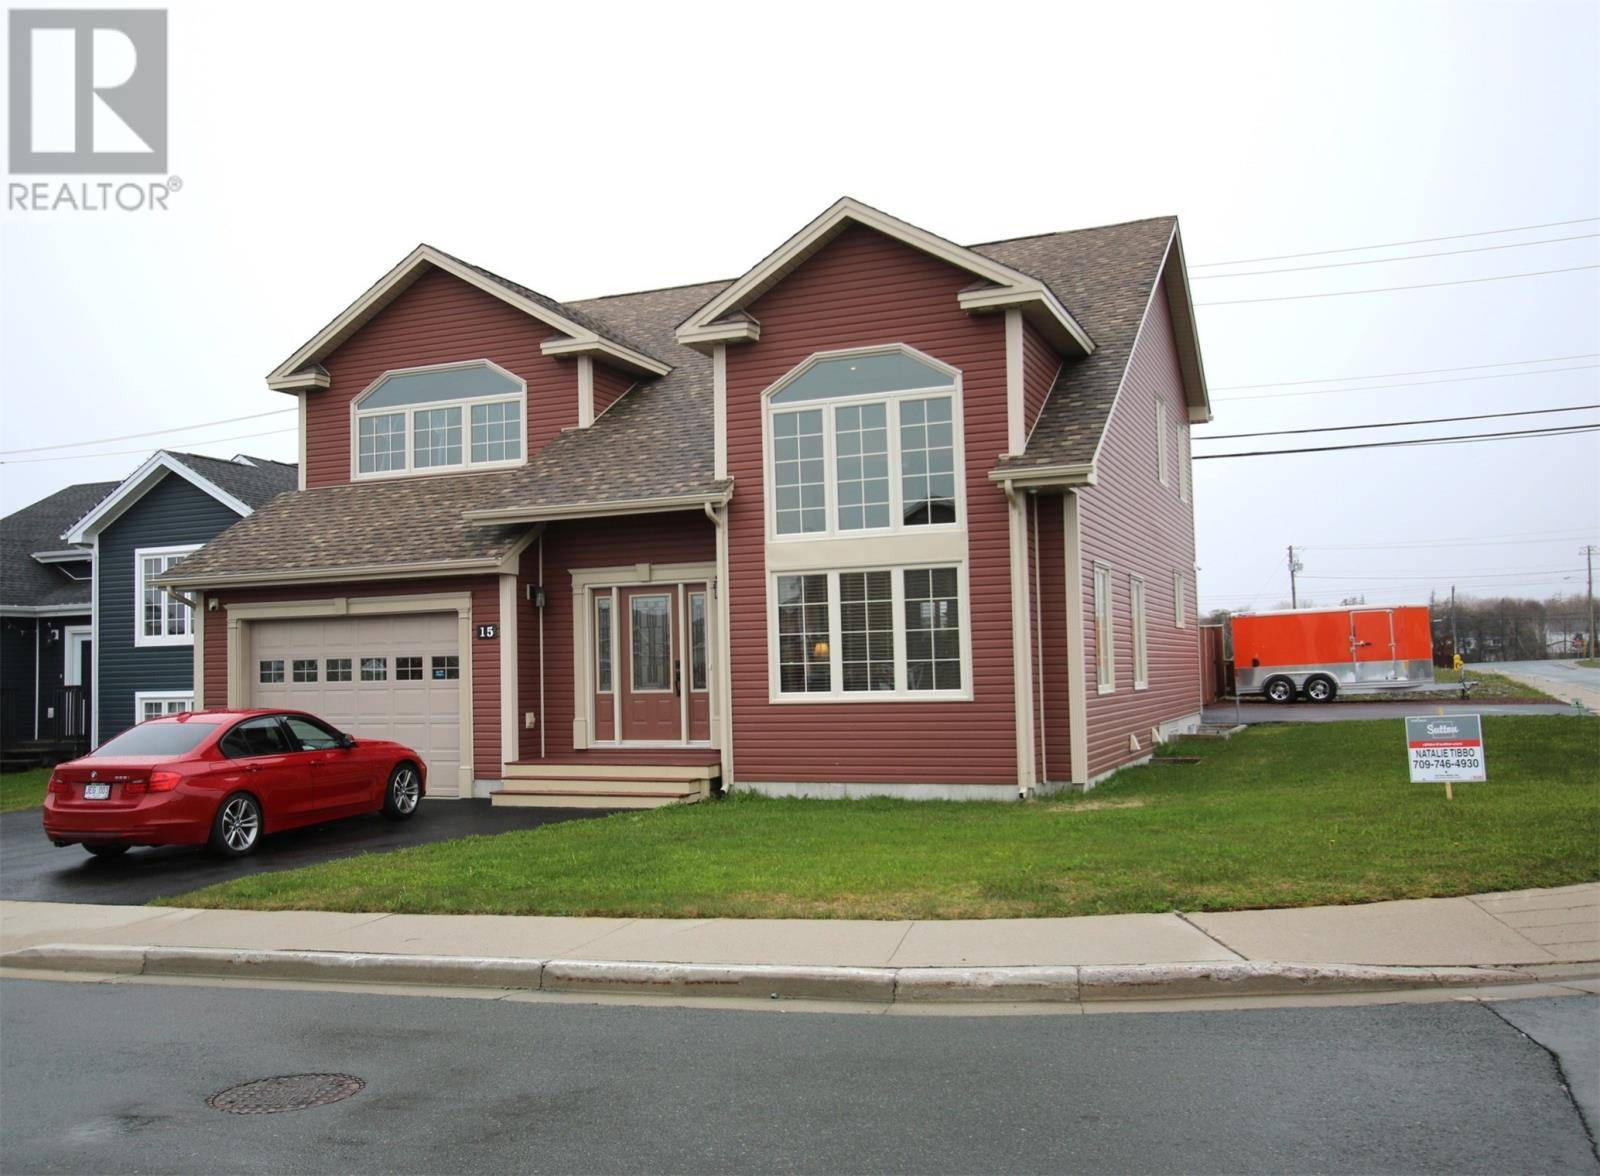 House for sale at 15 Tralee St St. John's Newfoundland - MLS: 1197135